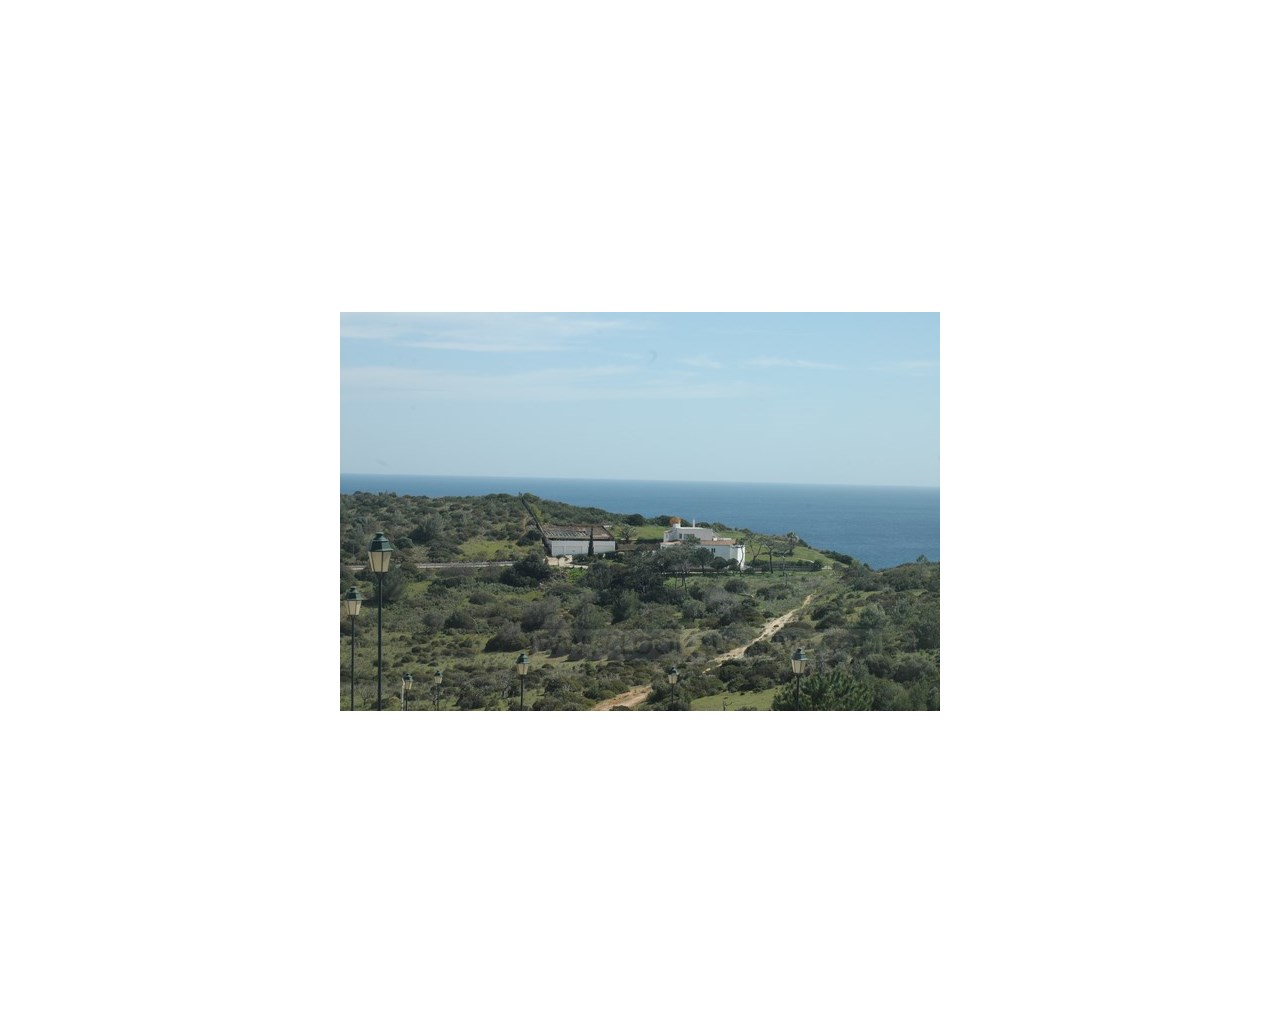 lot for sale, Lagos, Algarve